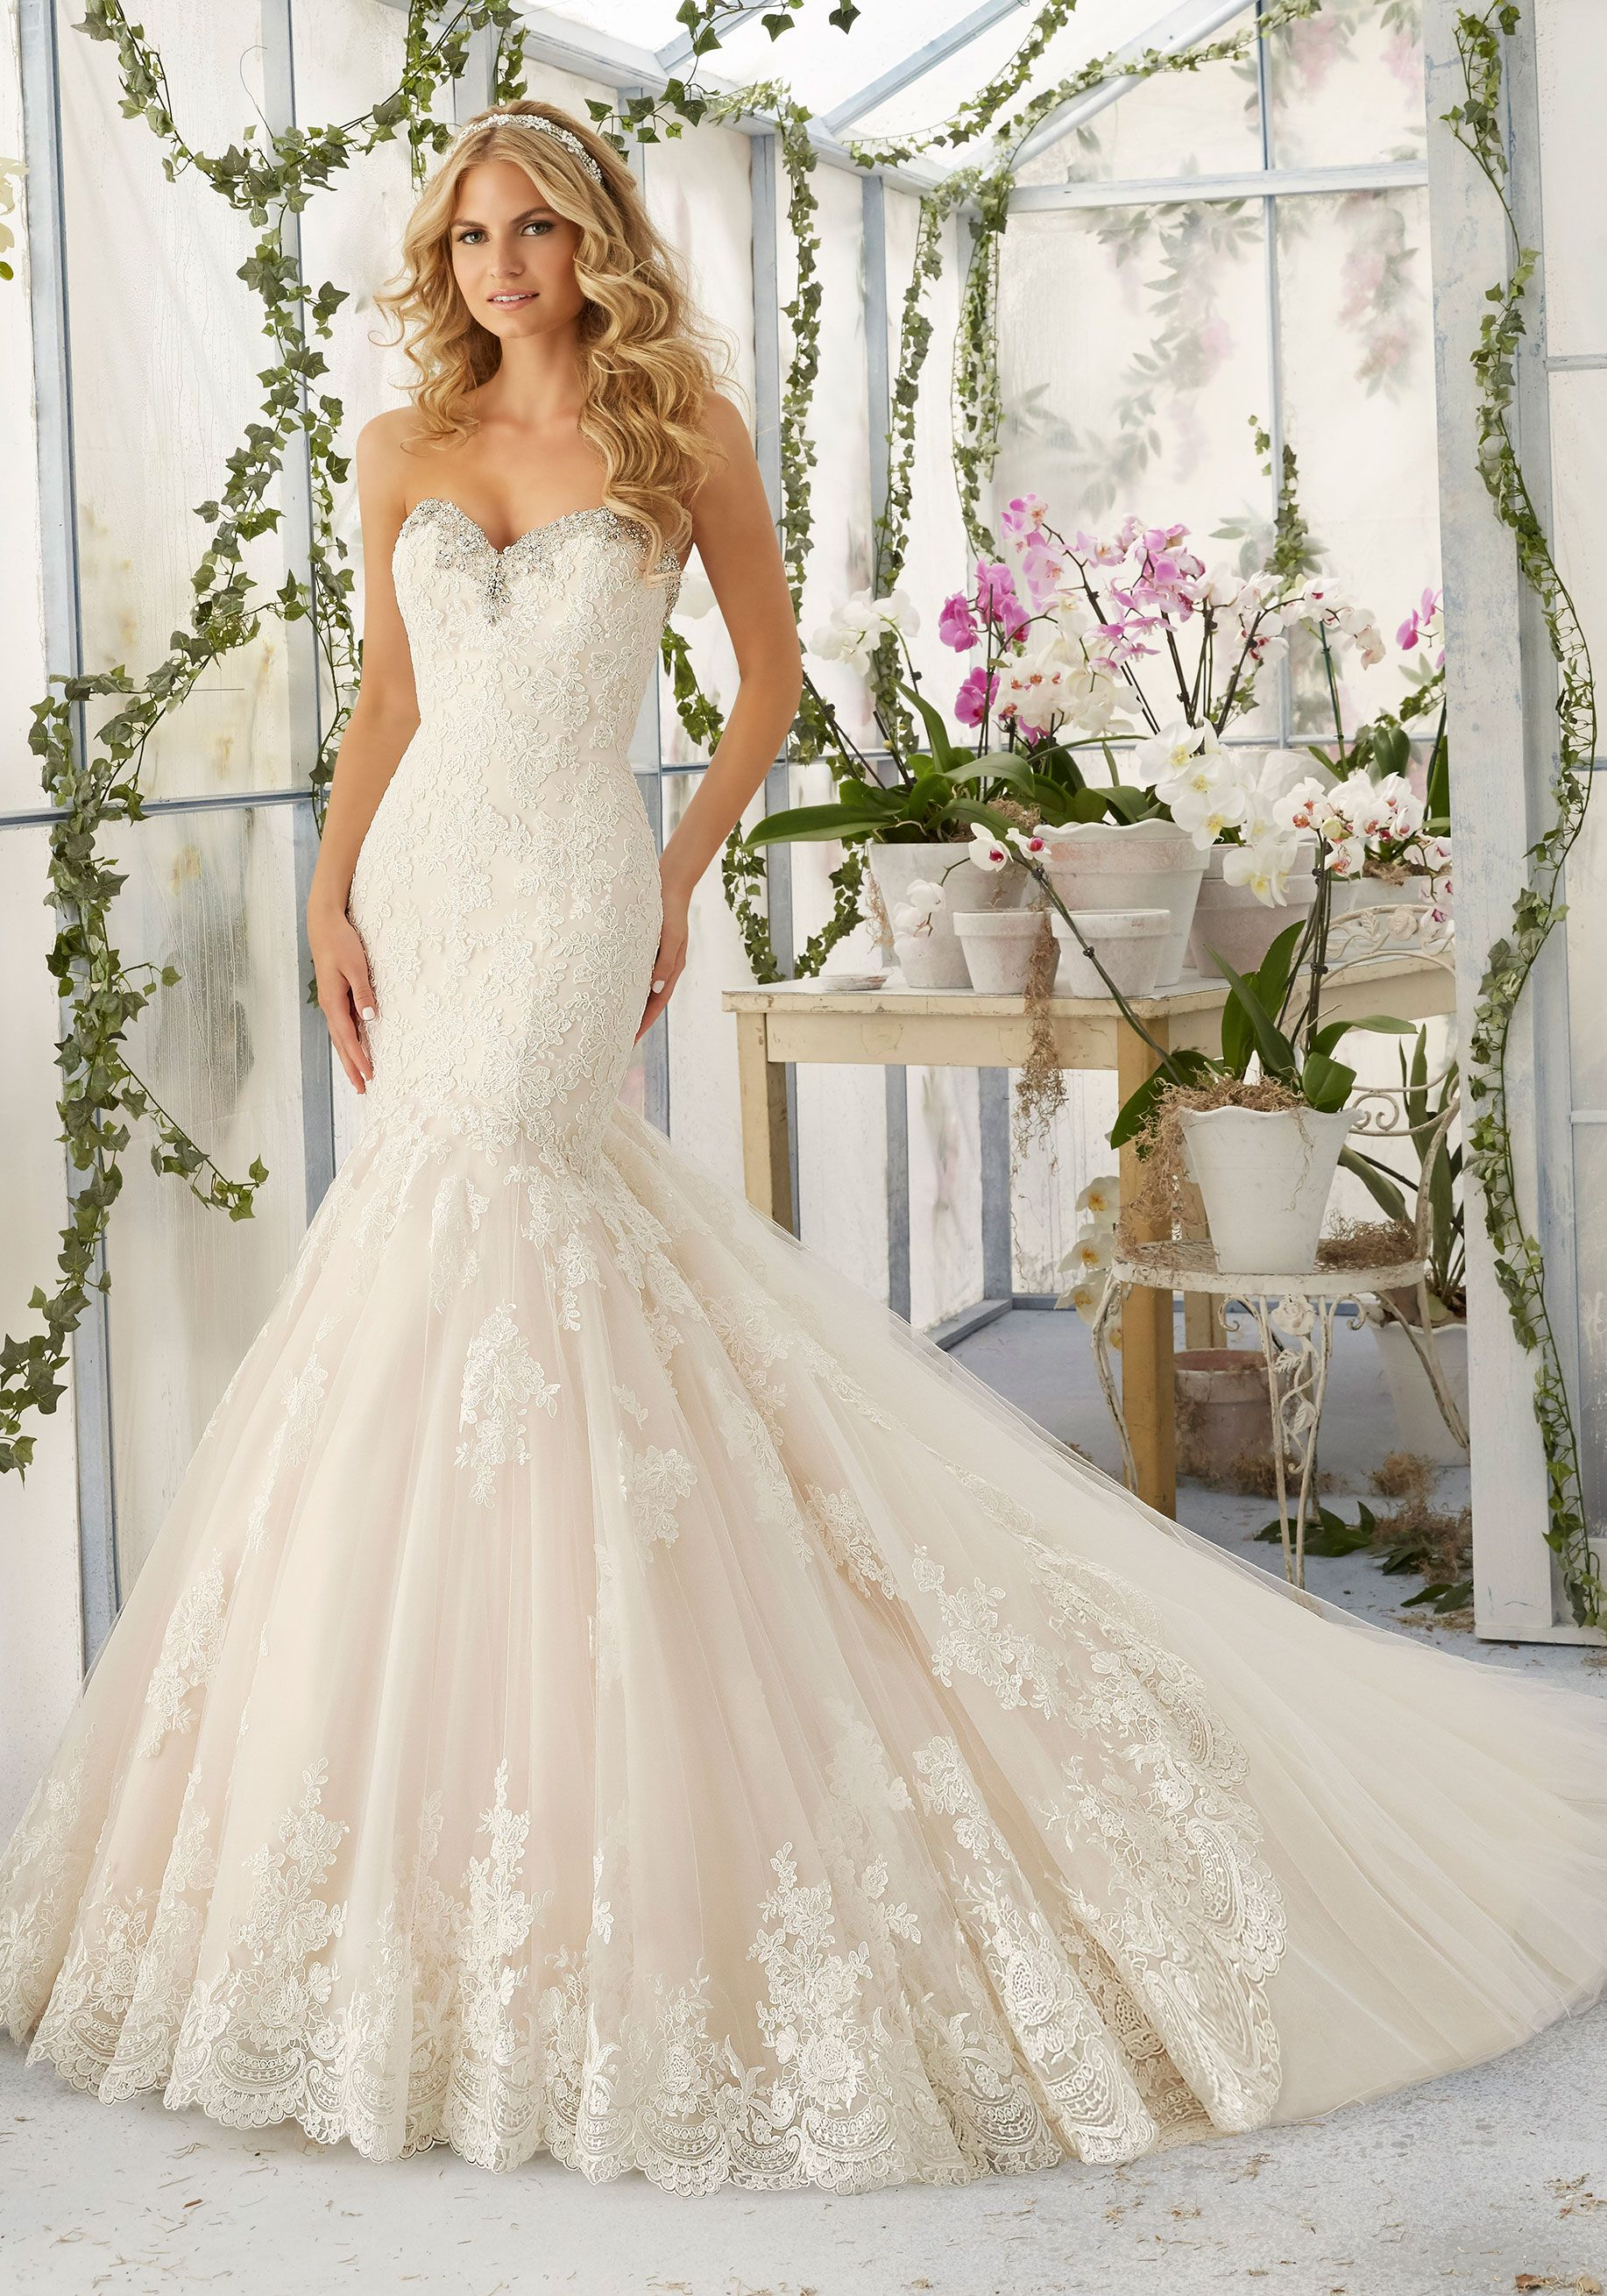 Crystal Beaded Embroidery With Alencon Lace Appliques And Scalloped Hemline Edging Tulle Wedding D Mori Lee Wedding Dress Wedding Dresses Beaded Bridal Dresses [ 2620 x 1834 Pixel ]